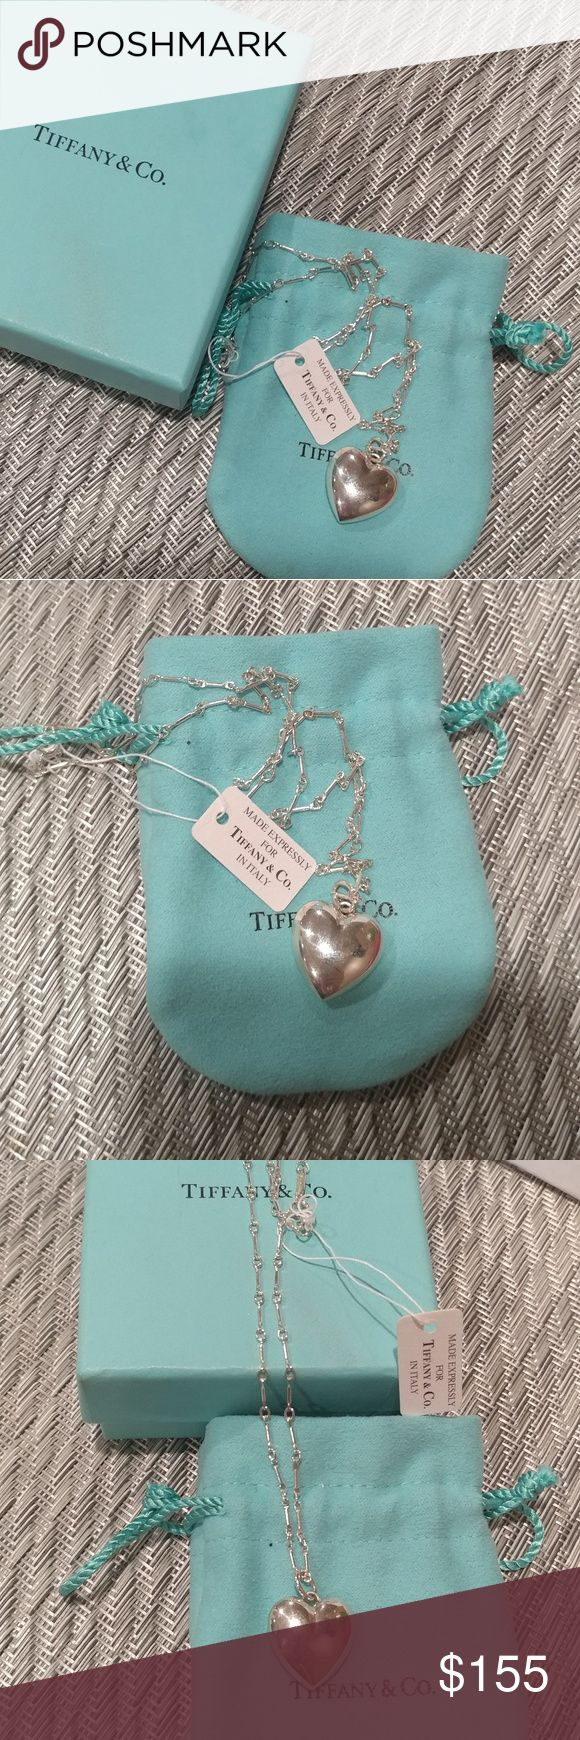 Tiffany & Co Sterling Silver Puffy Heart Necklace 100% Authentic NEW WITH TAGS Tiffany & Co AG 925 Italy Sterling Silver Puffy Heart Necklace. 18 in chain box and pouch included. Tiffany & Co. Jewelry Necklaces